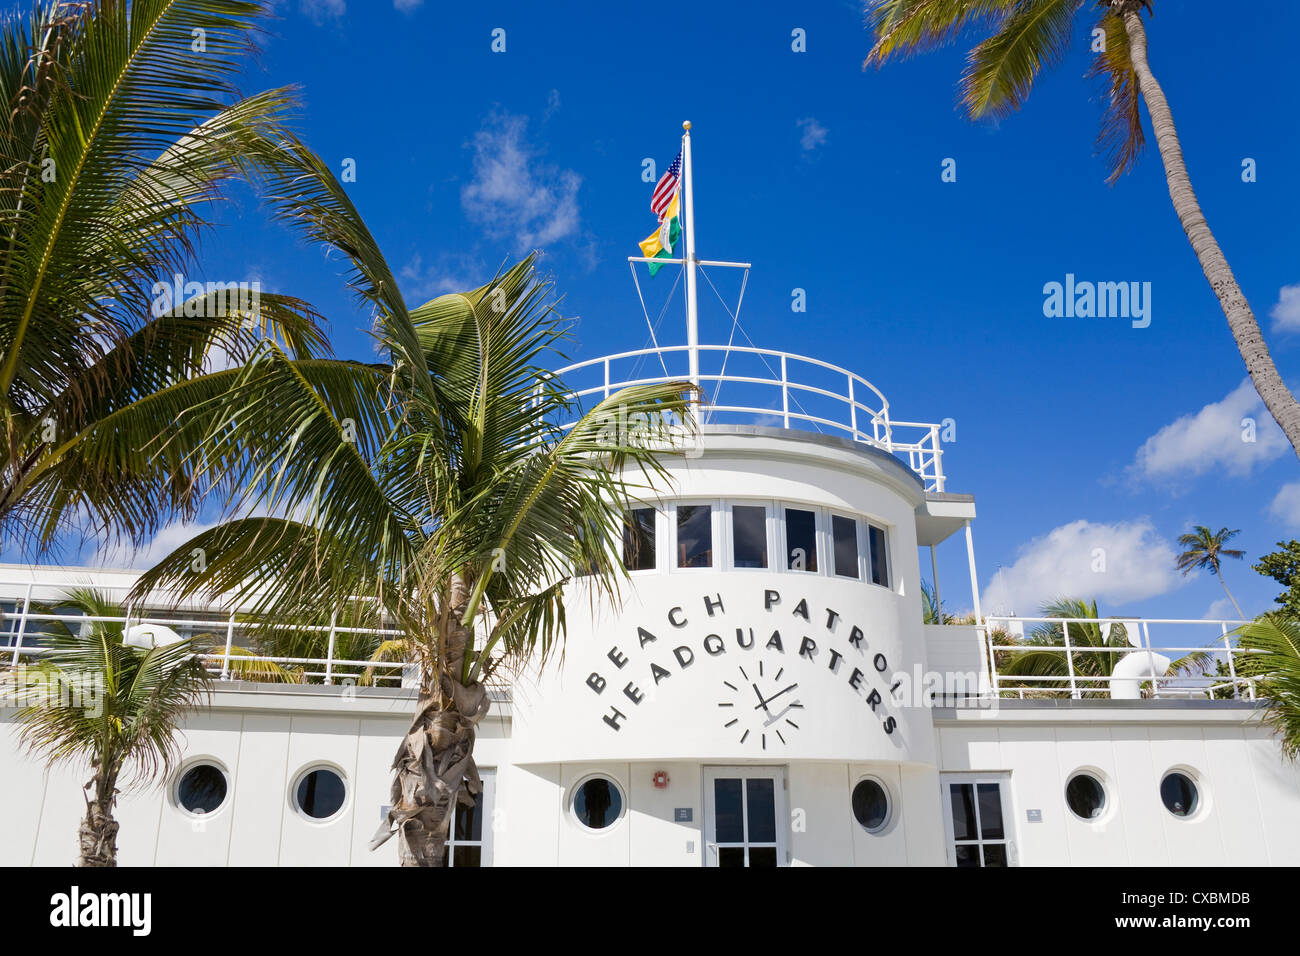 Beach Patrol Headquarters on South Beach, City of Miami Beach, Florida, United States of America, North America - Stock Image